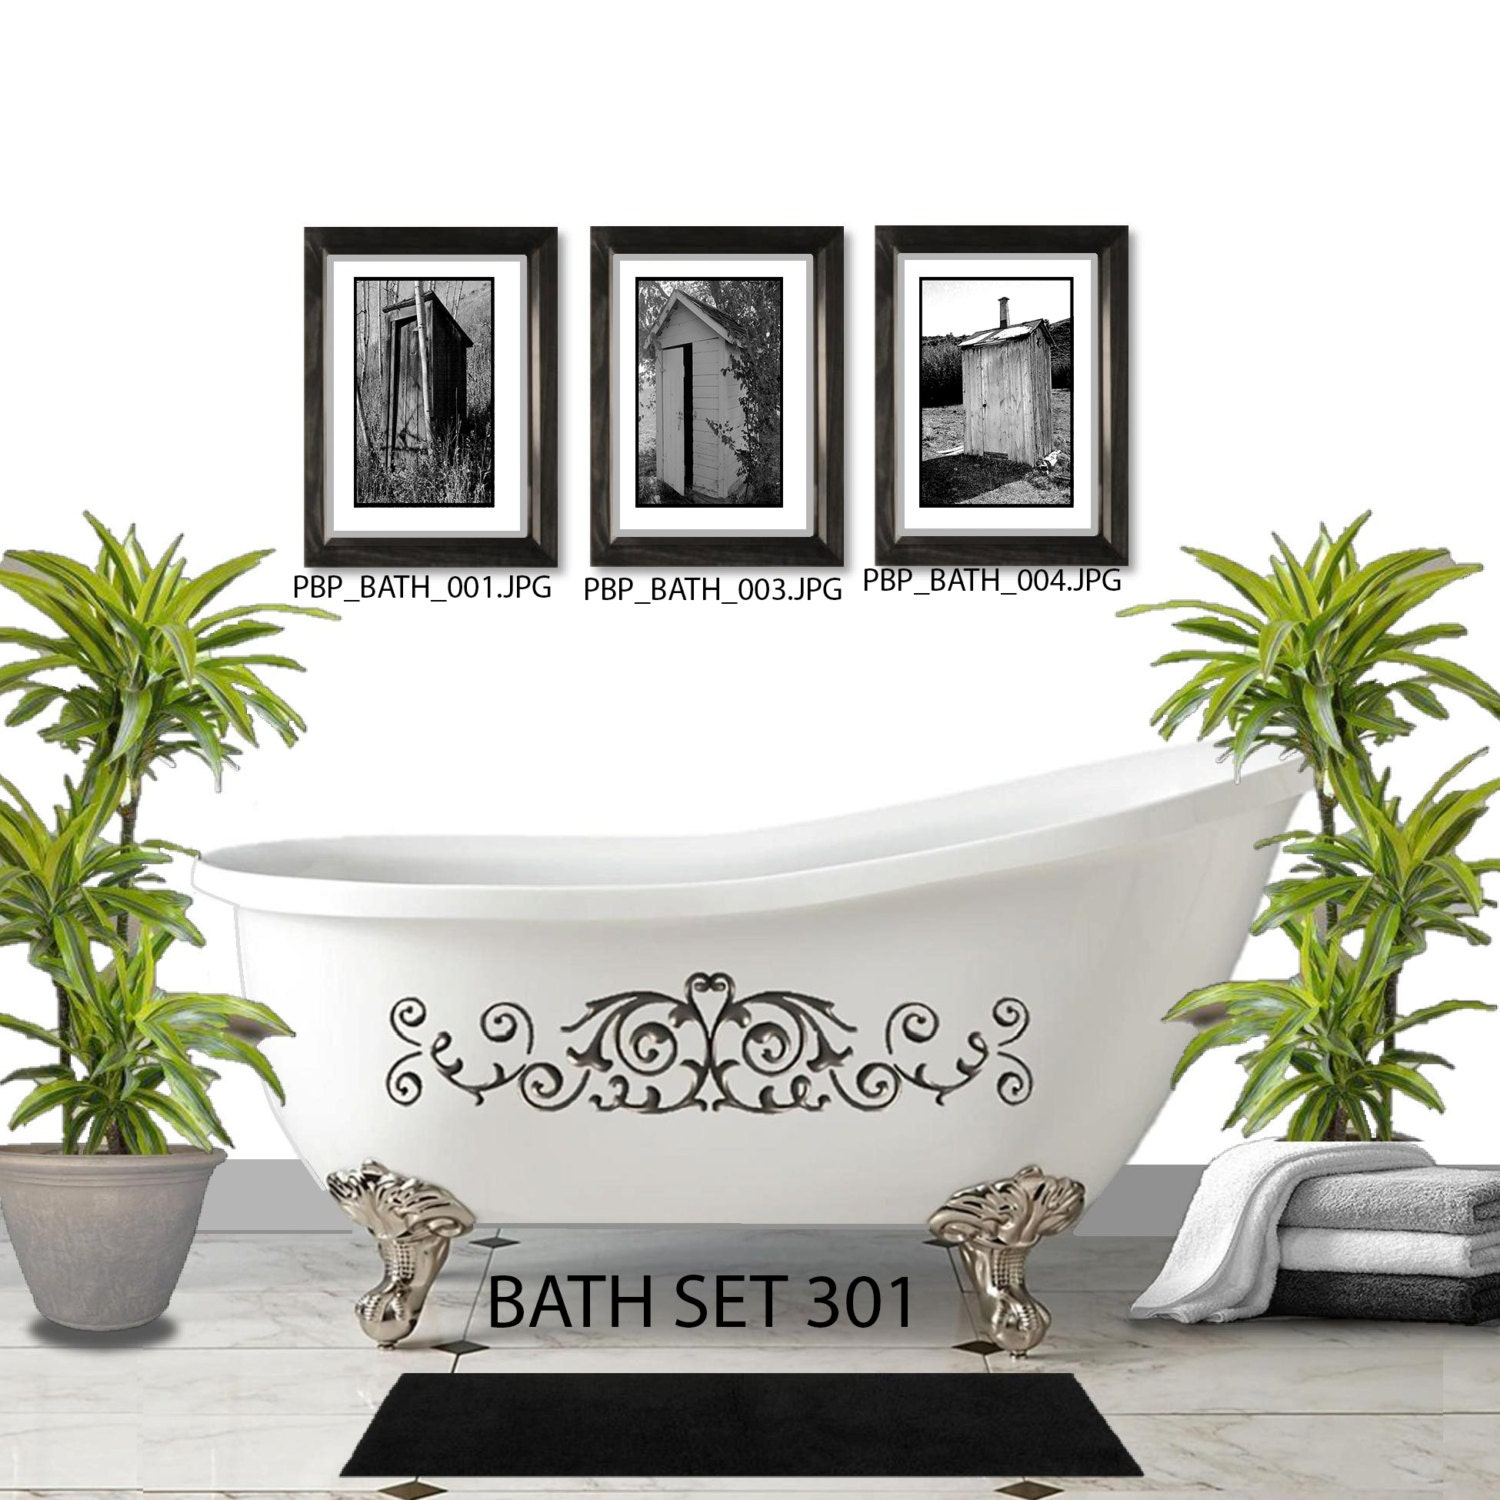 Outhouse wall set 3 framed and matted prints free shipping outhouse wall set 3 framed and matted prints free shipping black or white frames in 4 sizes mix and match create a gallery wall jeuxipadfo Images